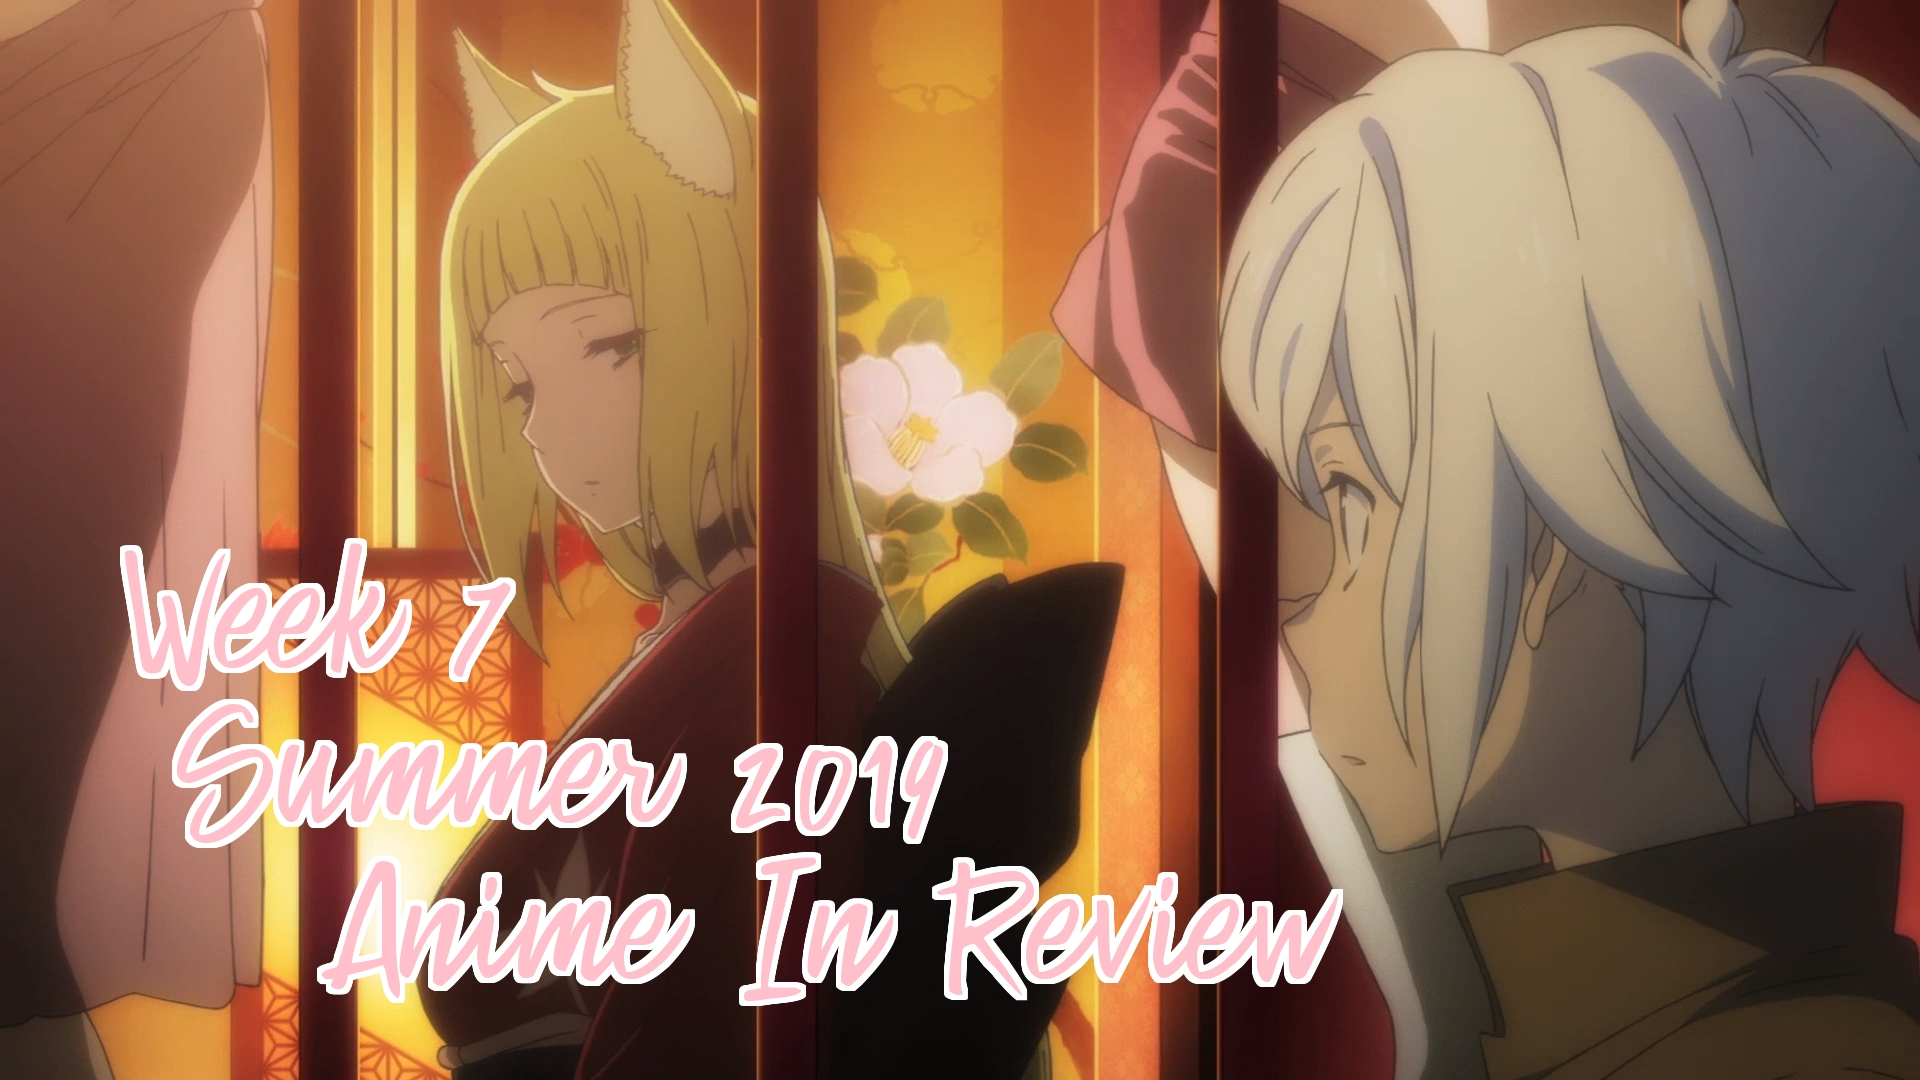 Week 7 of Summer 2019 Anime In Review